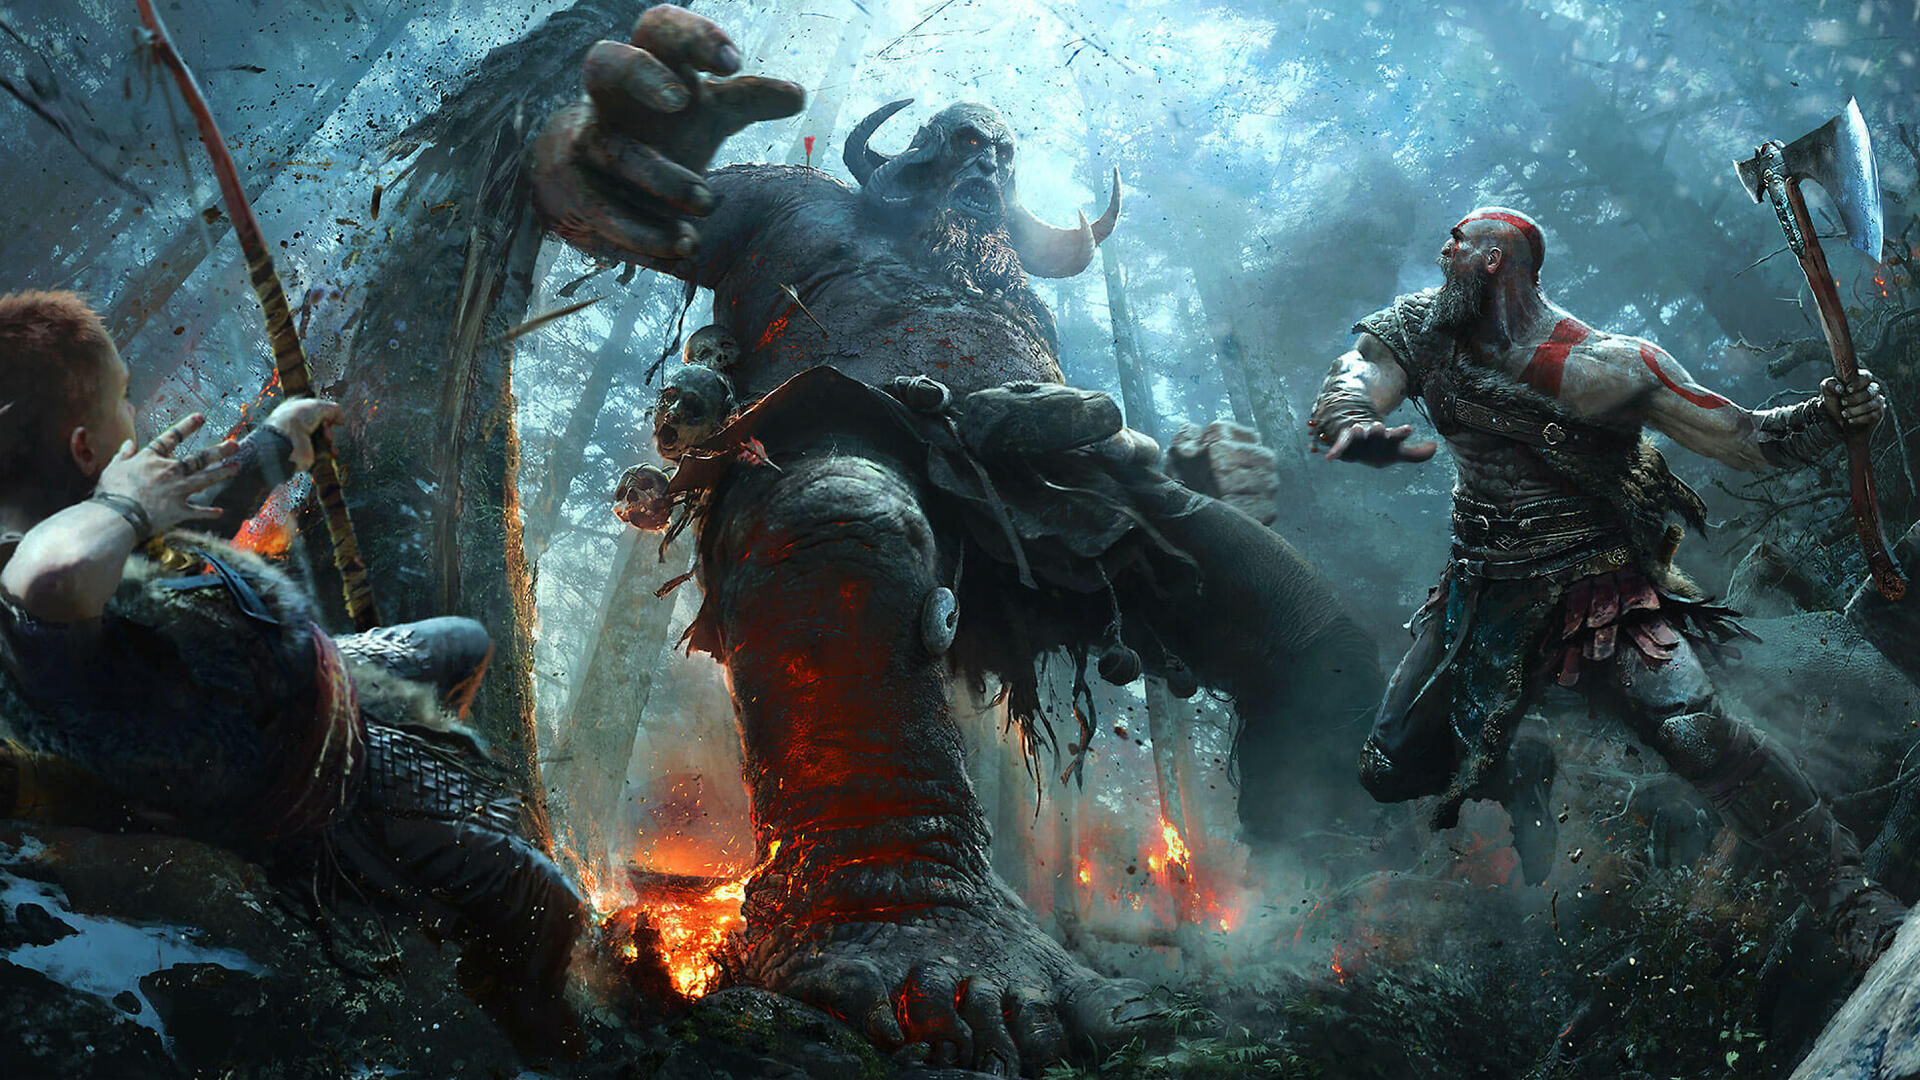 God of War Wins Another GOTY at 2019 Game Developers Choice Awards